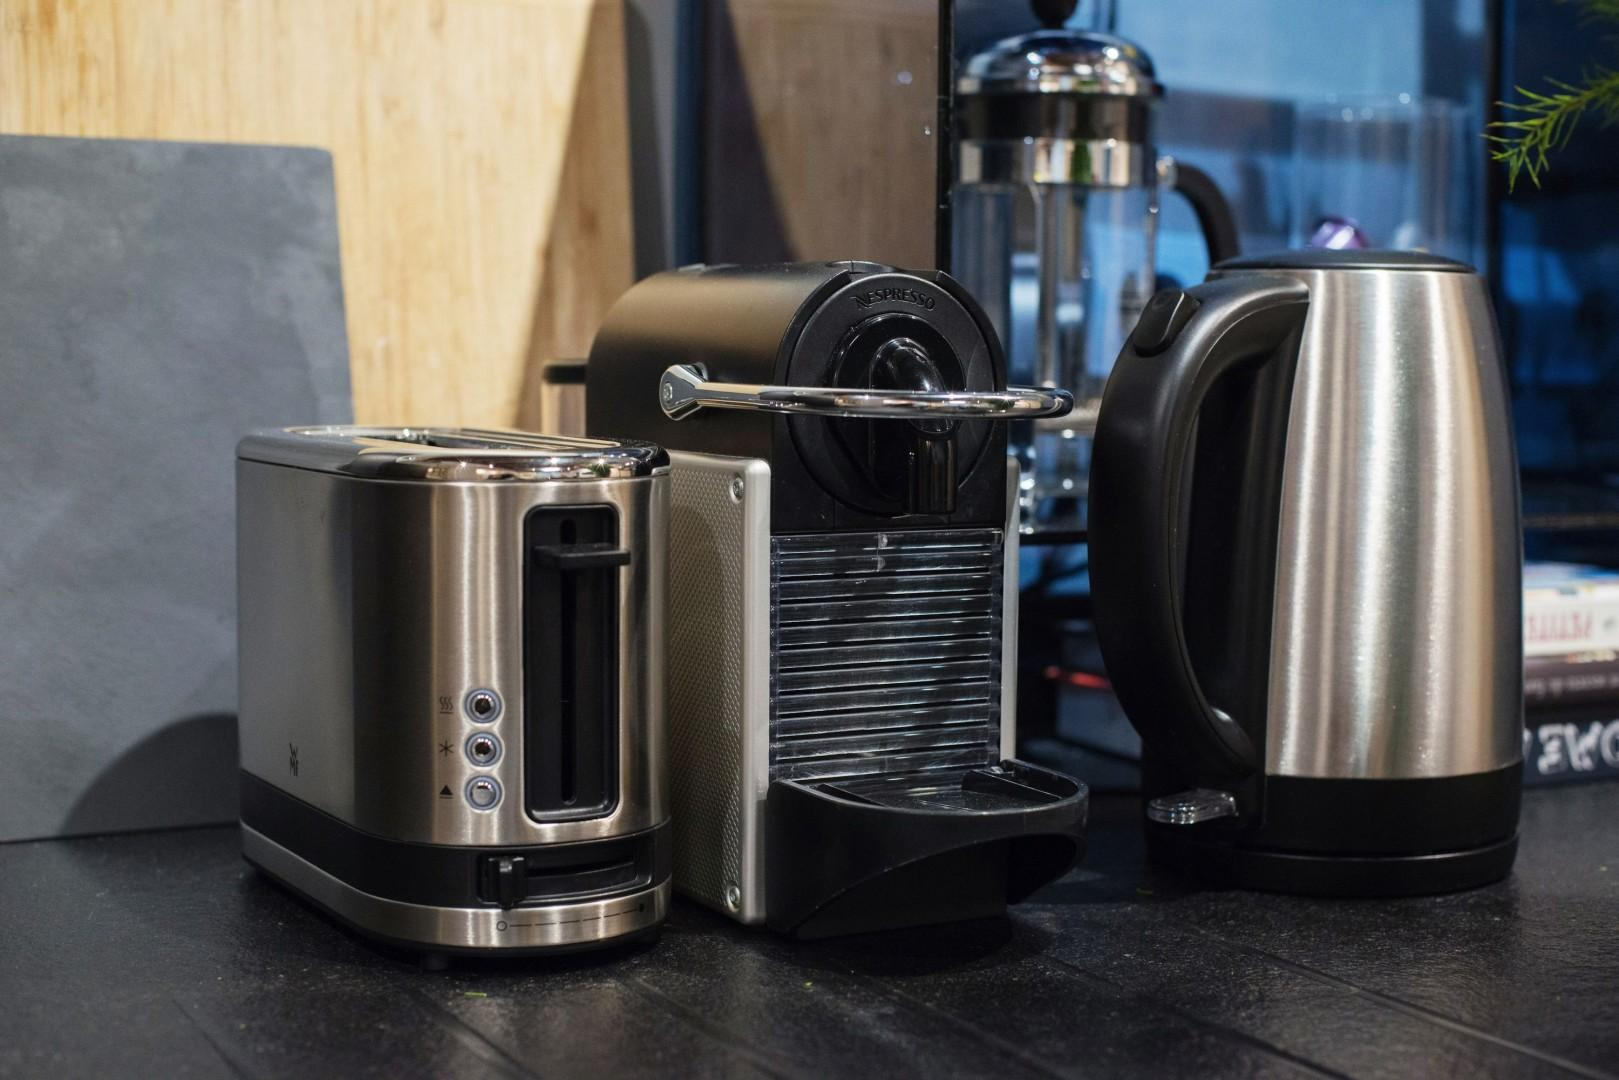 You'll love having your own Nespresso machine!